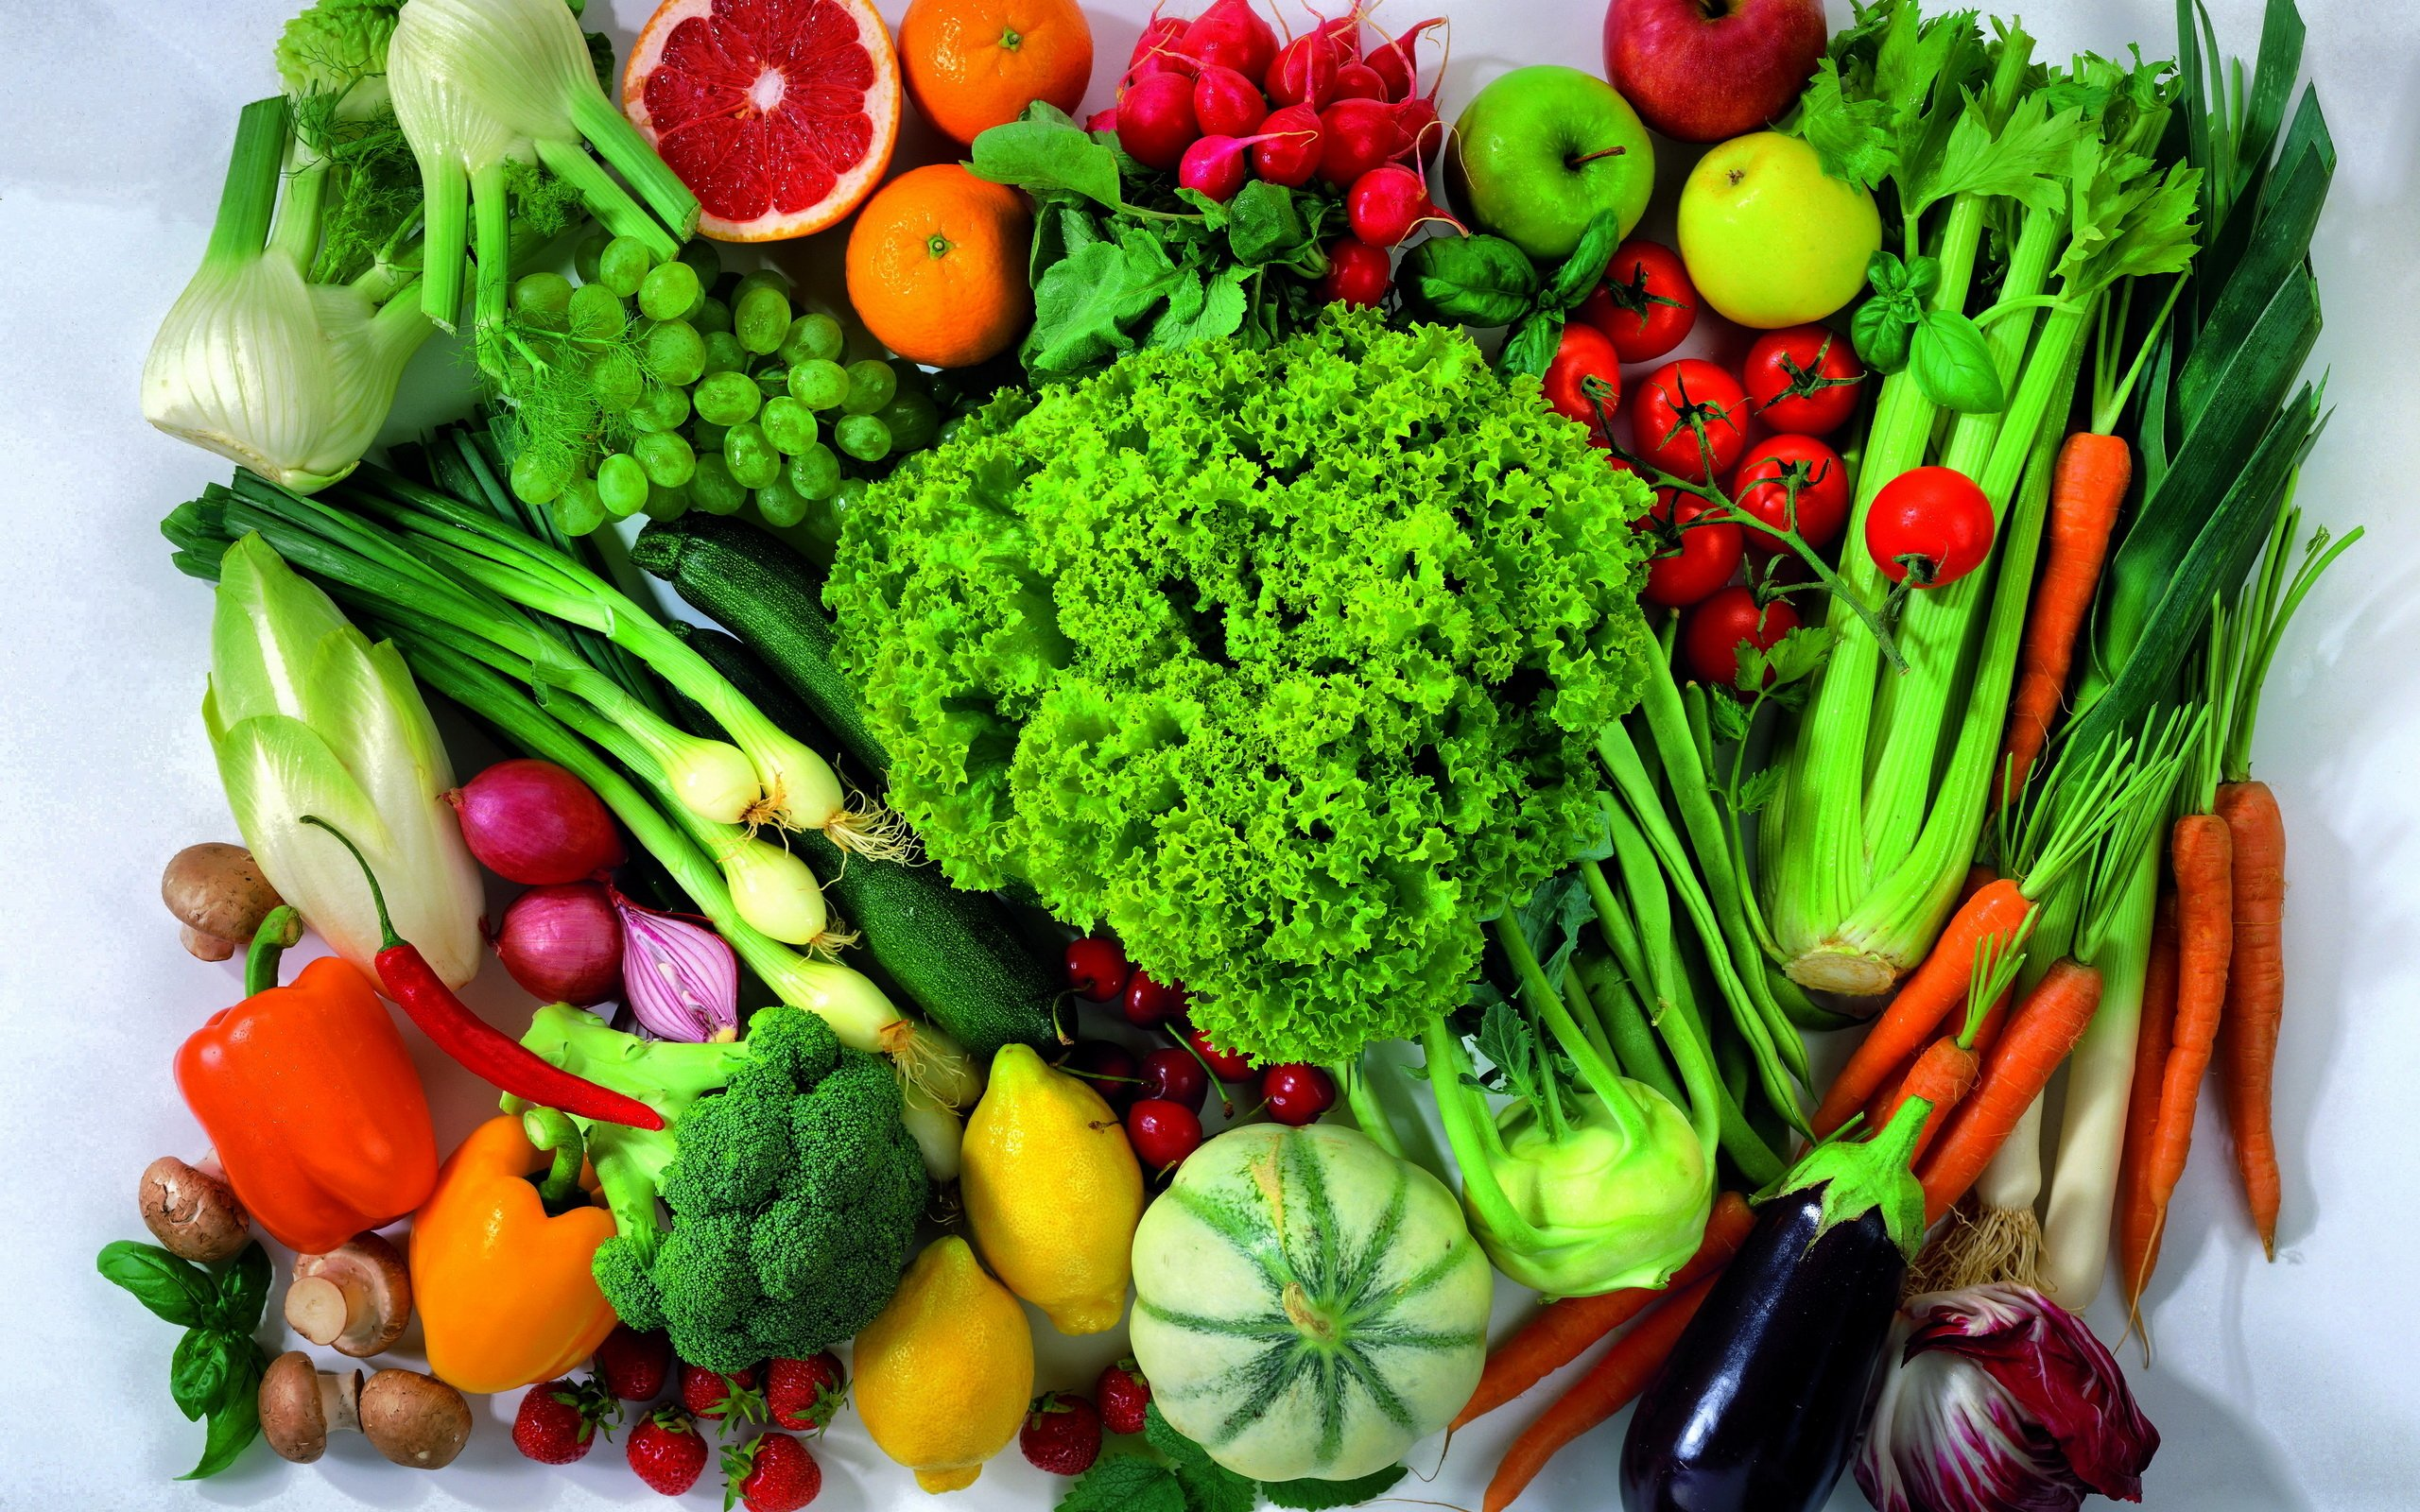 Fruit and vegetable mix wallpapers and images   wallpapers pictures 2560x1600